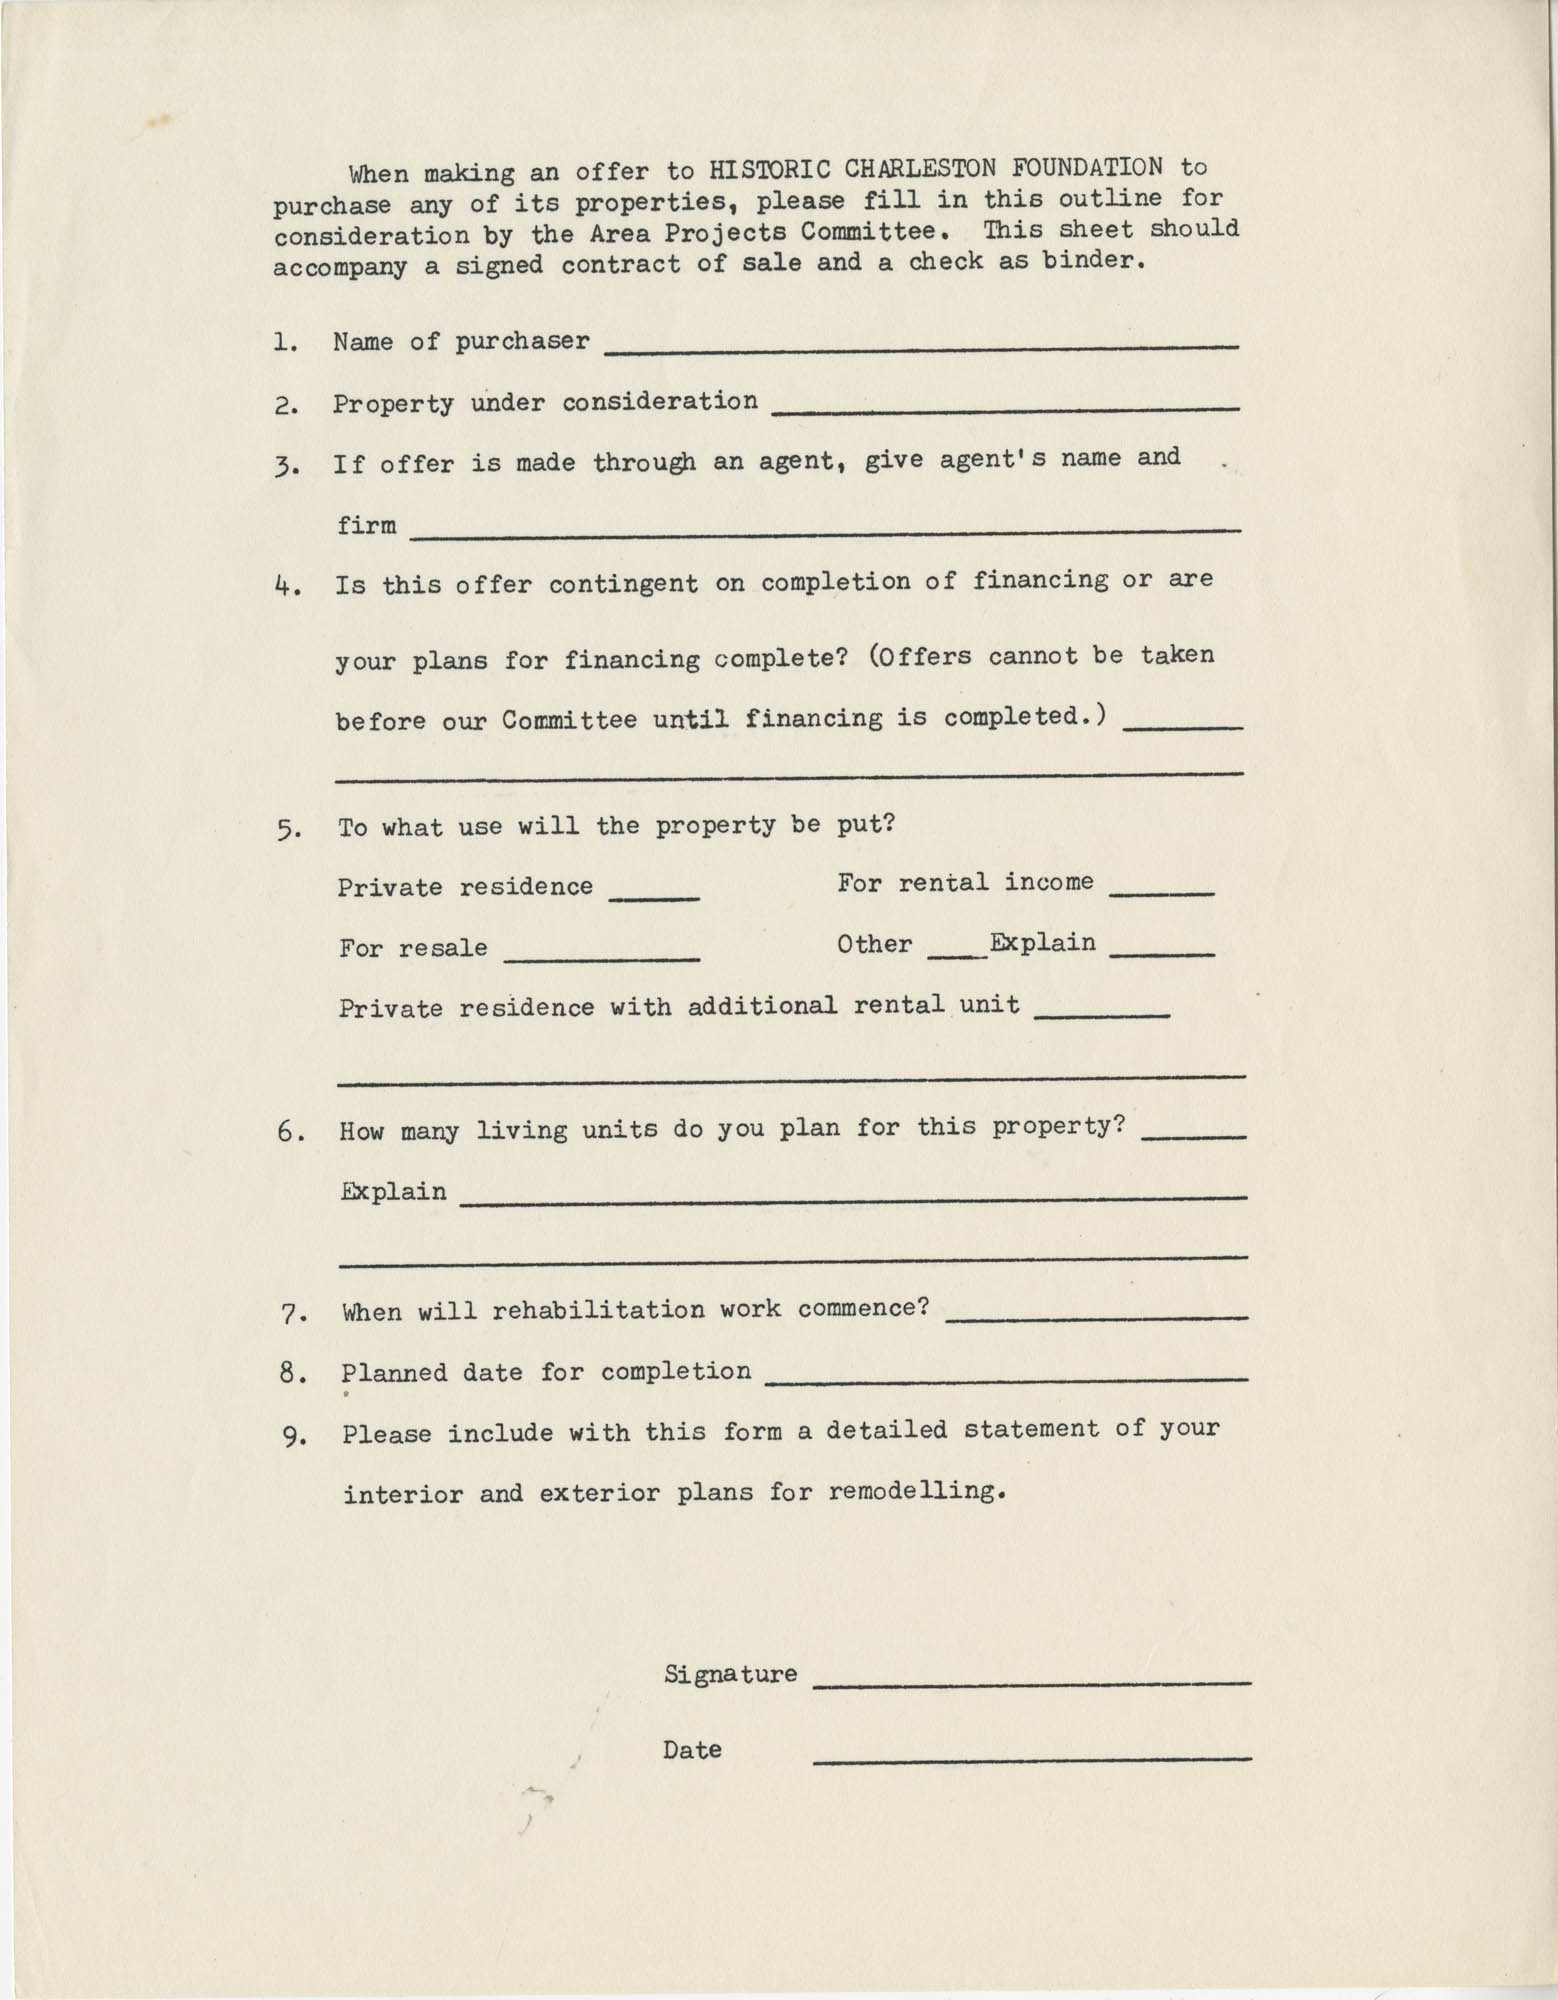 Application to purchase a property from Historic Charleston Foundation